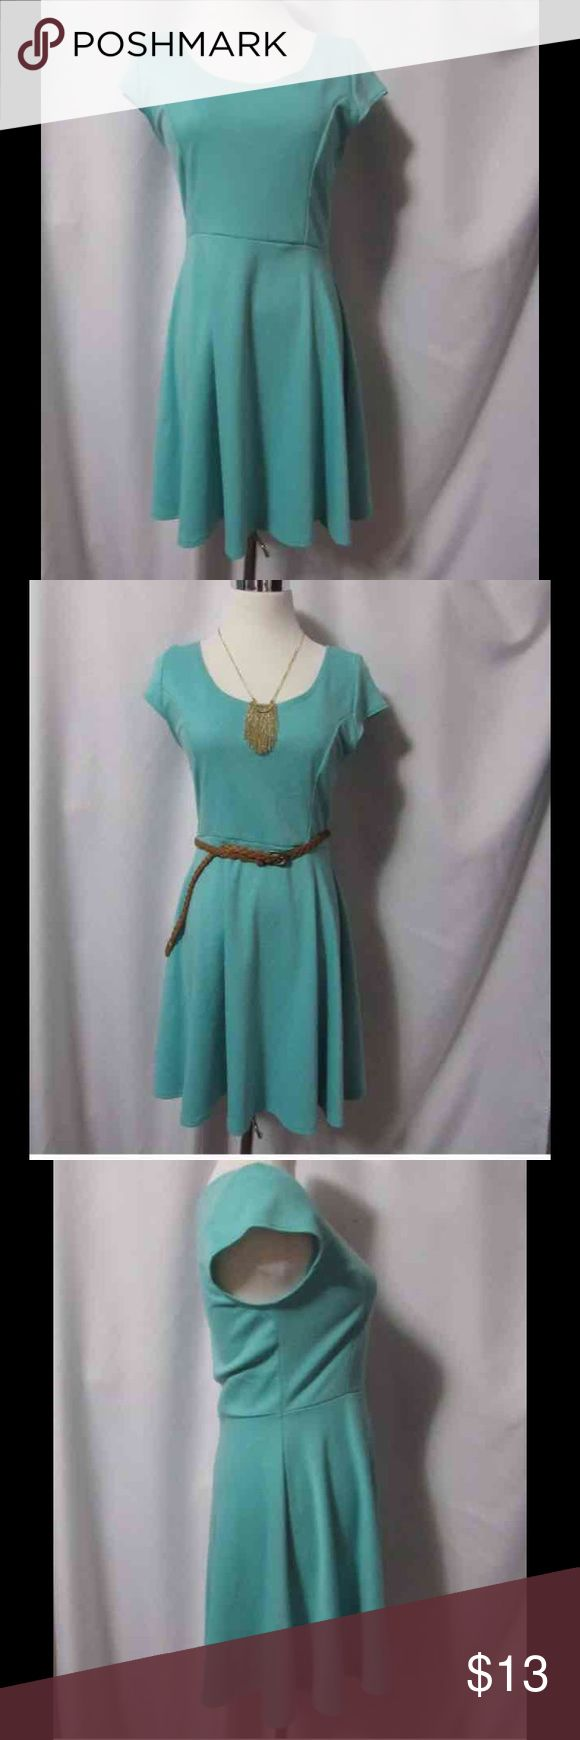 Vibe sportswear mint green dress size L This mint green dress is in good conditions no stains or holes from a smoke free home. Size large  Measurements Shoulder width: 13.5 in bust: 14 in waist: 14.5 in sleeve: 4 in length: 33.5 in Dresses Mini